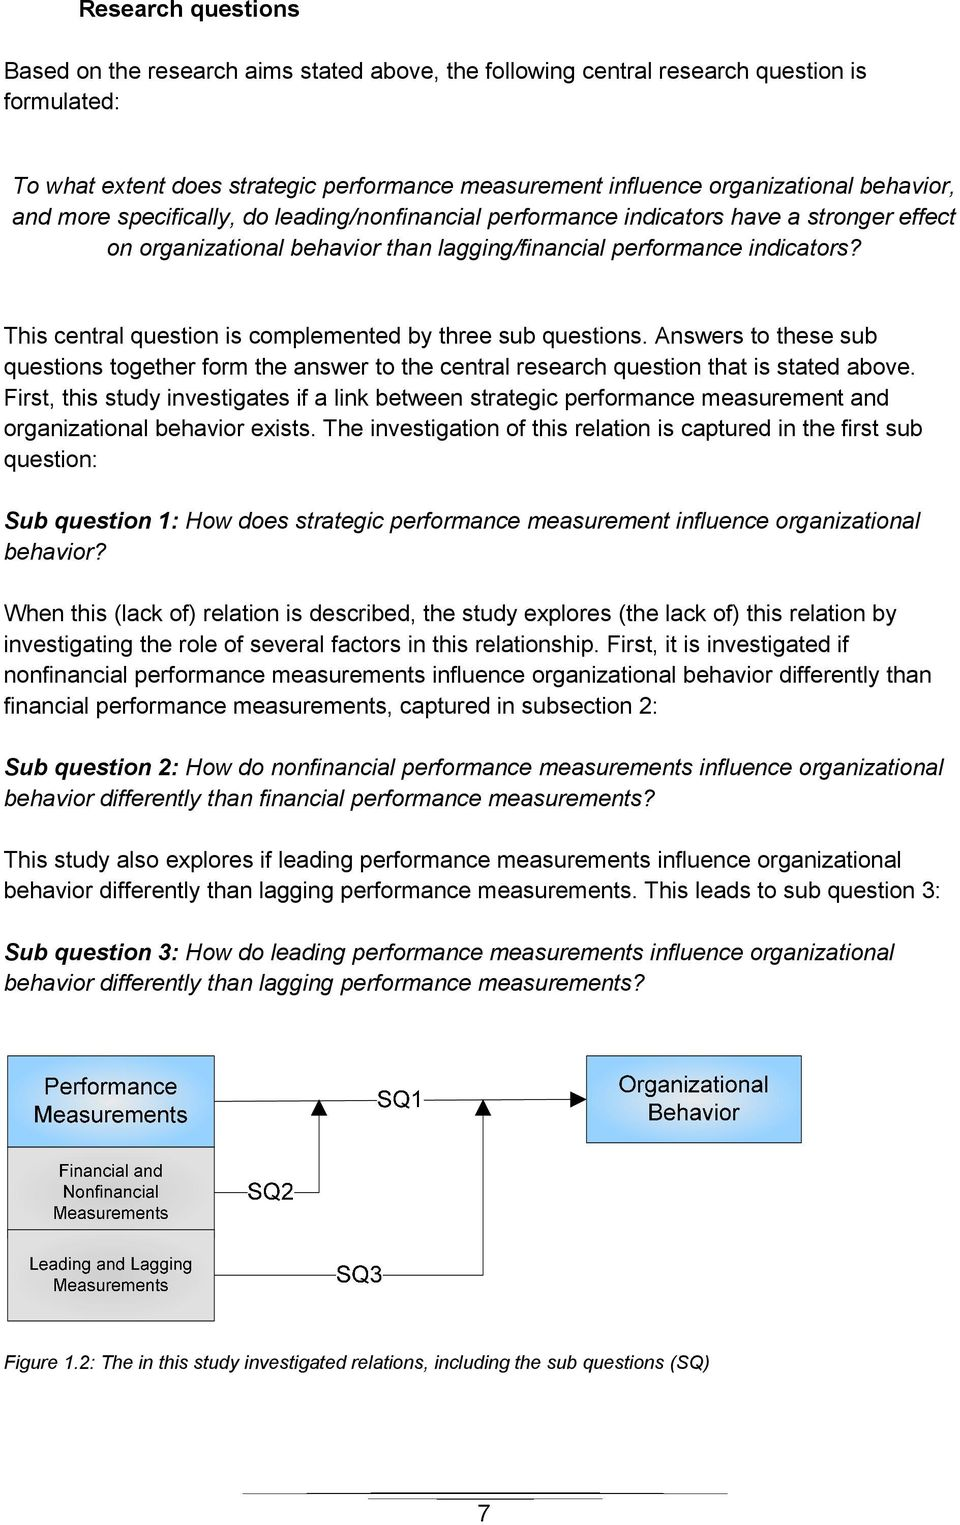 This central question is complemented by three sub questions. Answers to these sub questions together form the answer to the central research question that is stated above.